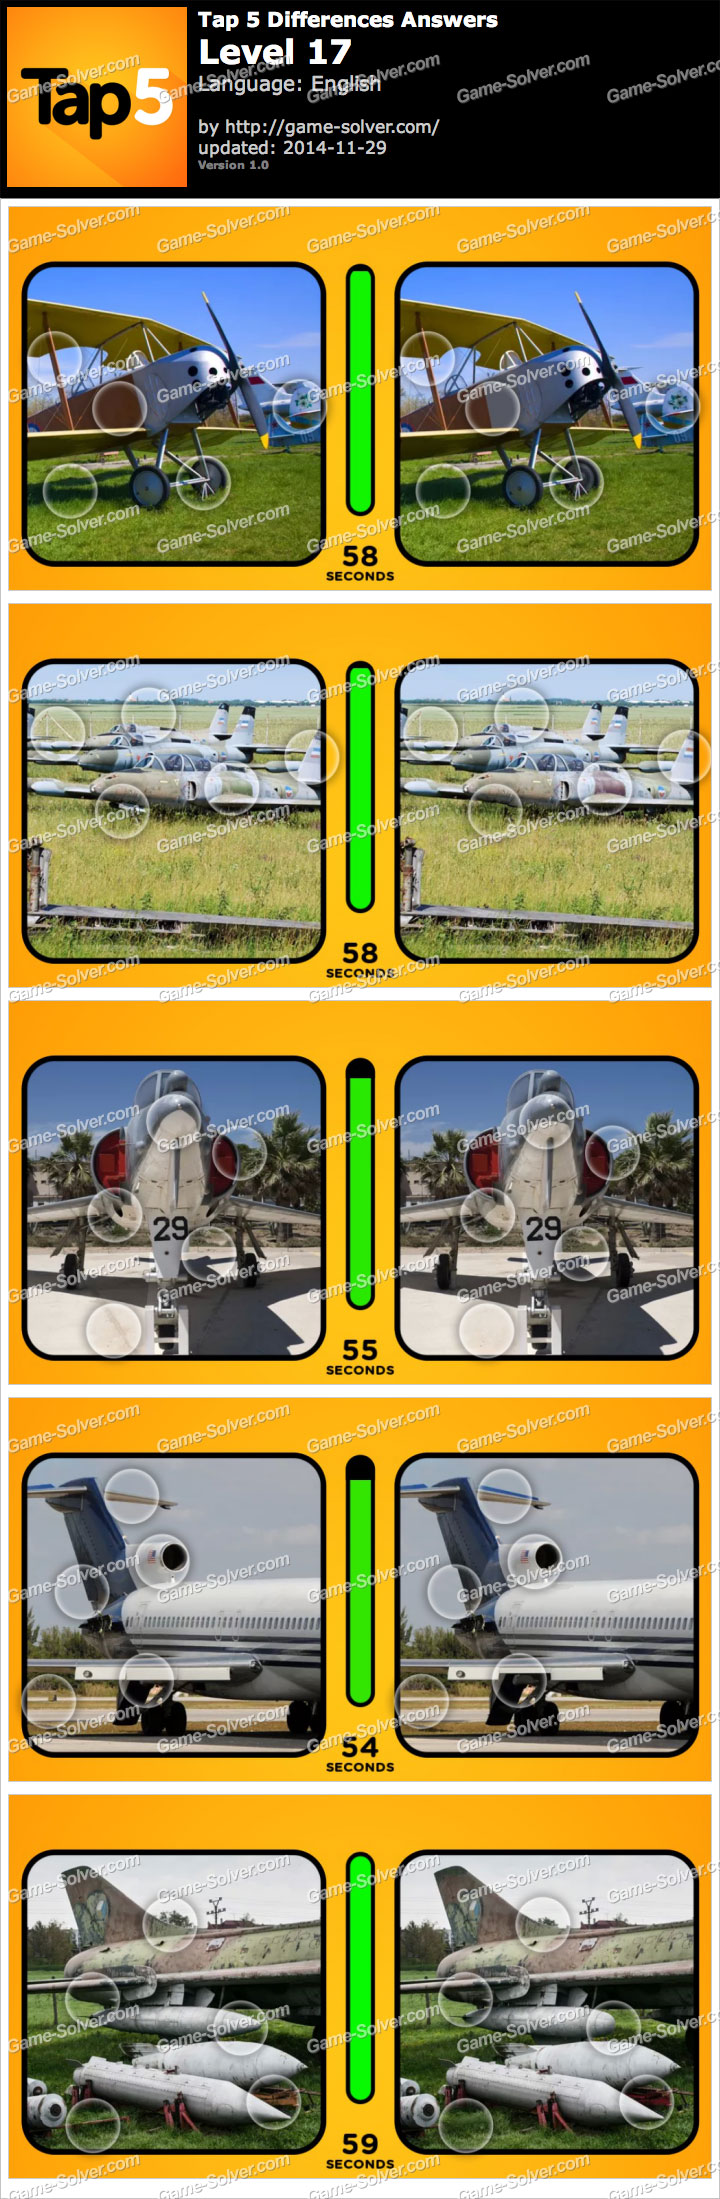 Tap 5 Differences Level 17